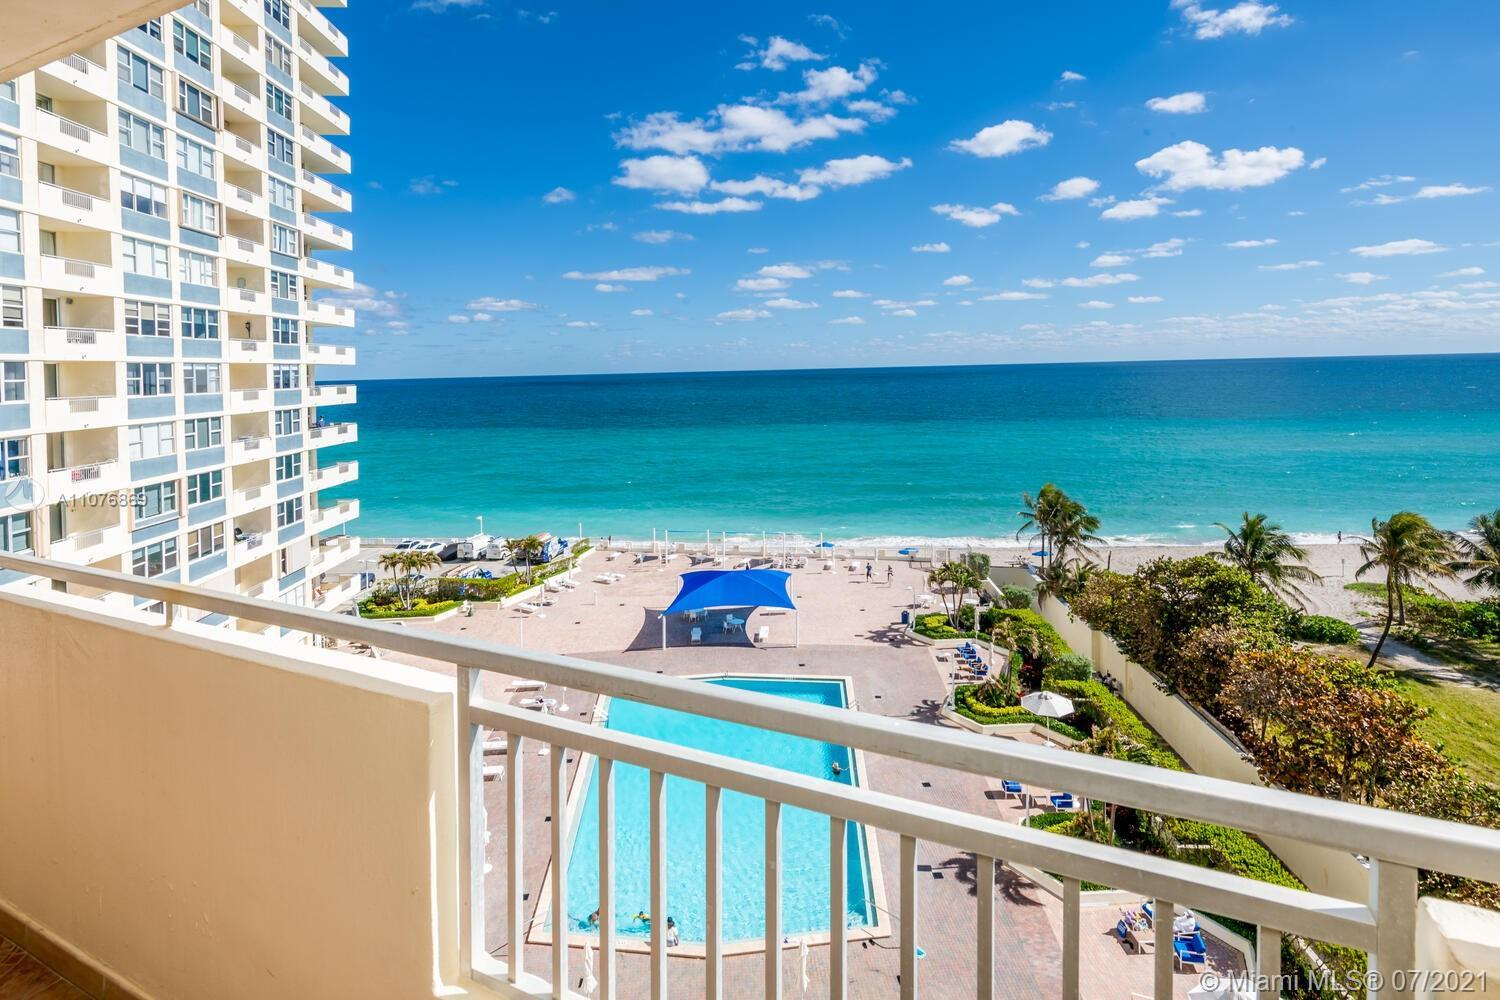 Beachfront Resort with Beach Service and Amazing Direct Ocean view from 7-th floor. 1 bed room with